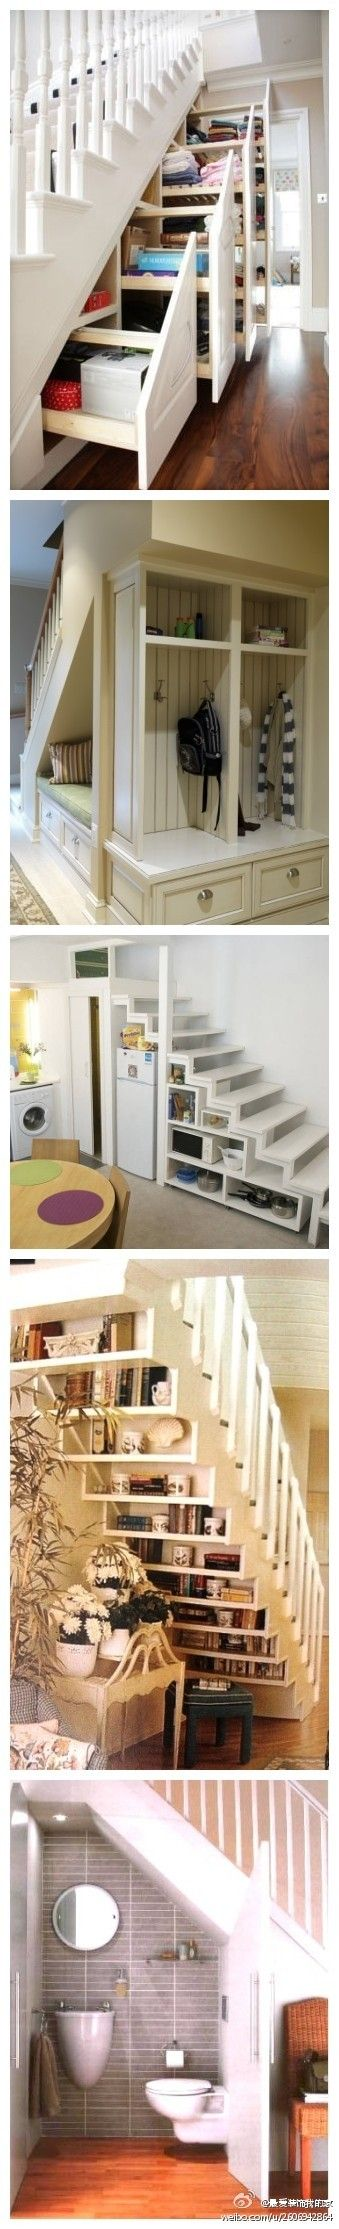 Creative ideas for using the space under